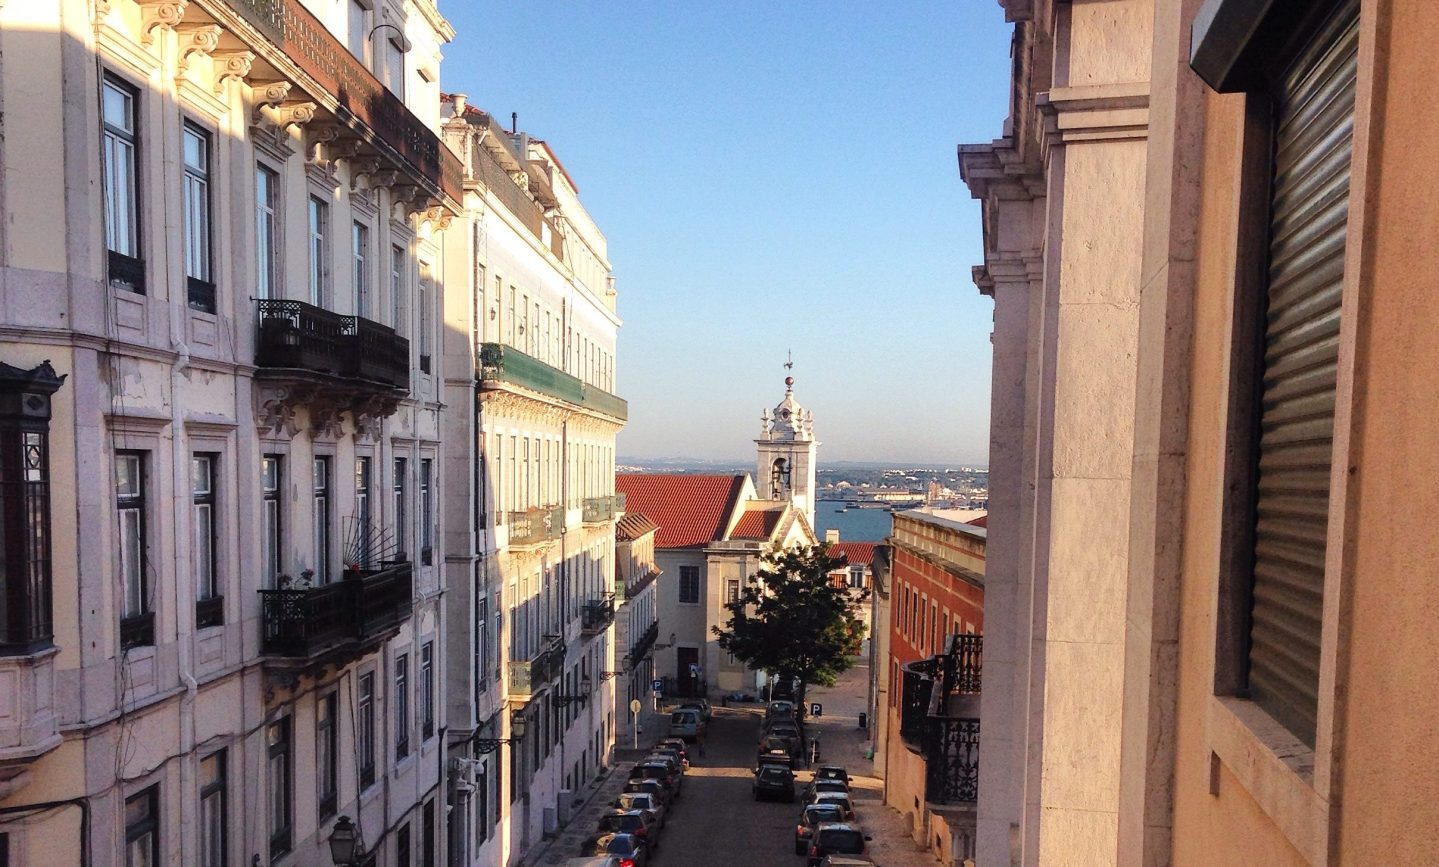 48 hours in Lisbon: Summer in the City